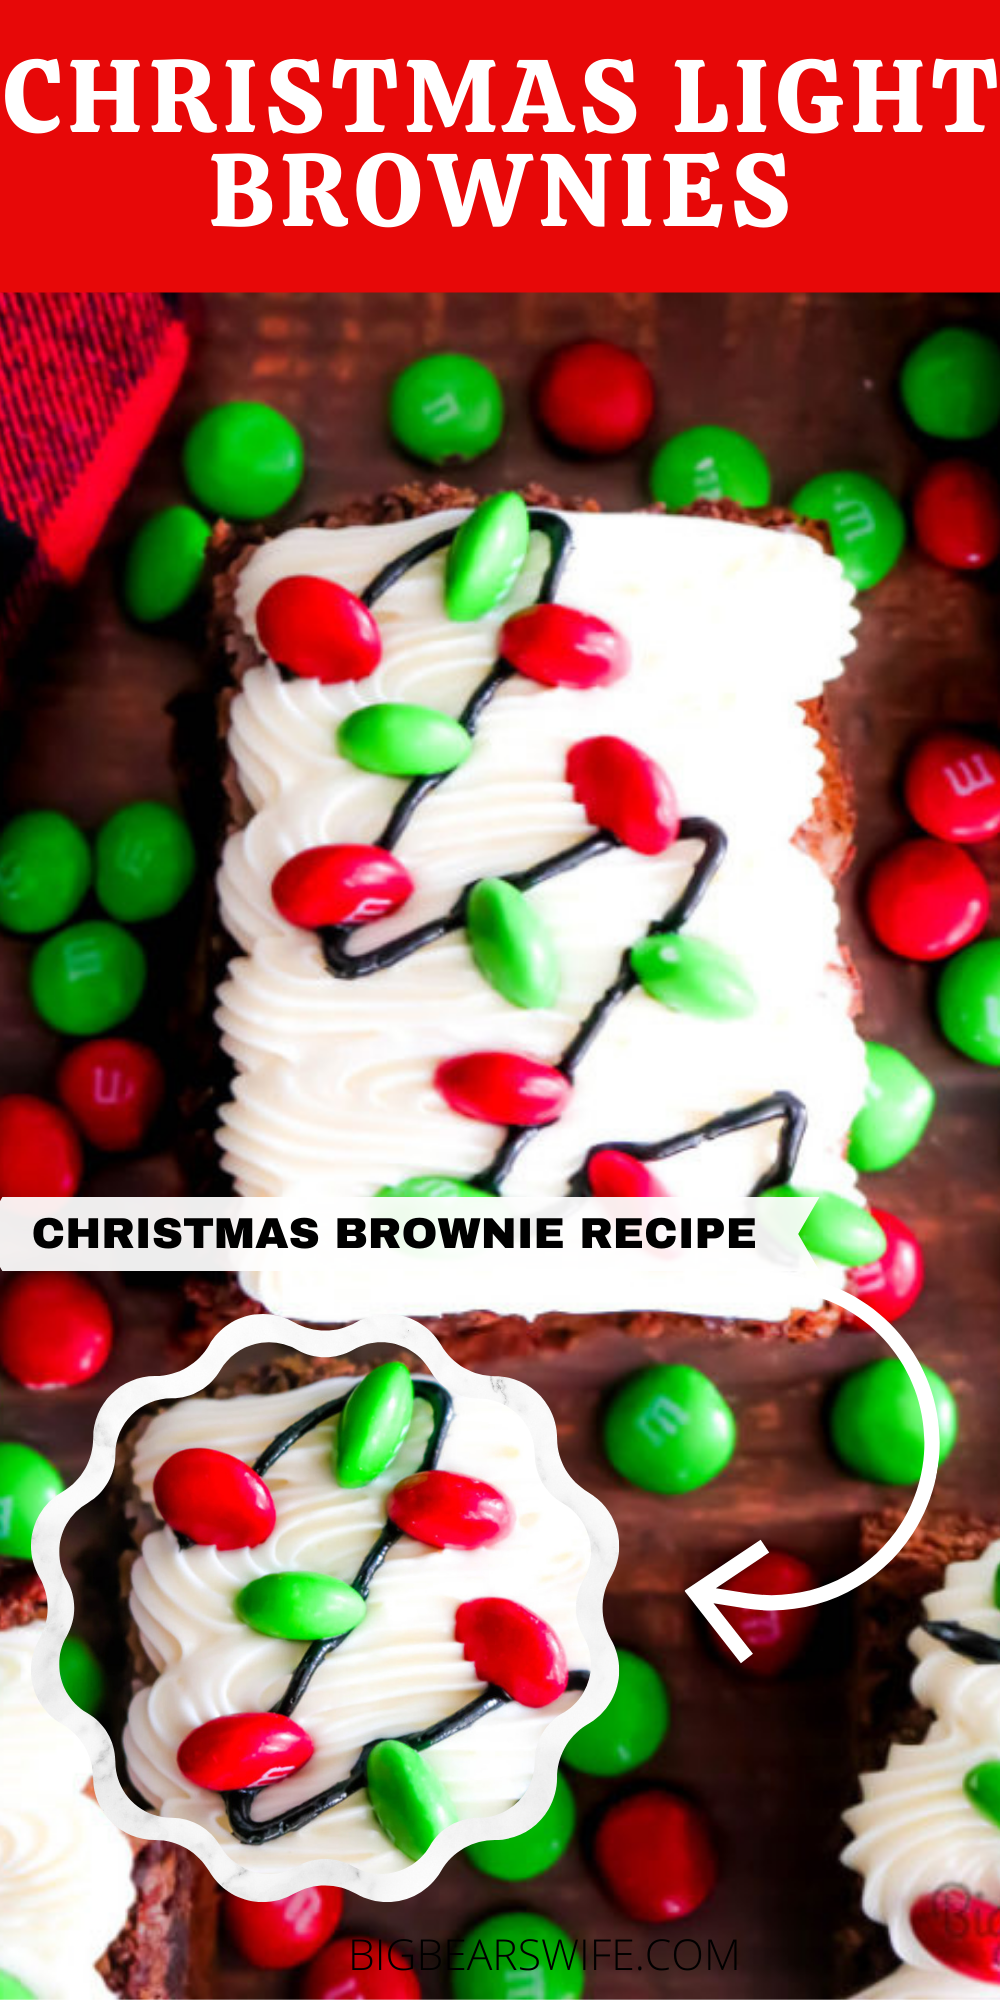 Everyone's face will light up when you bring out these festive Christmas Light Brownies at the party! Christmas brownies this easy to decorate are sure to become a family favorite! via @bigbearswife